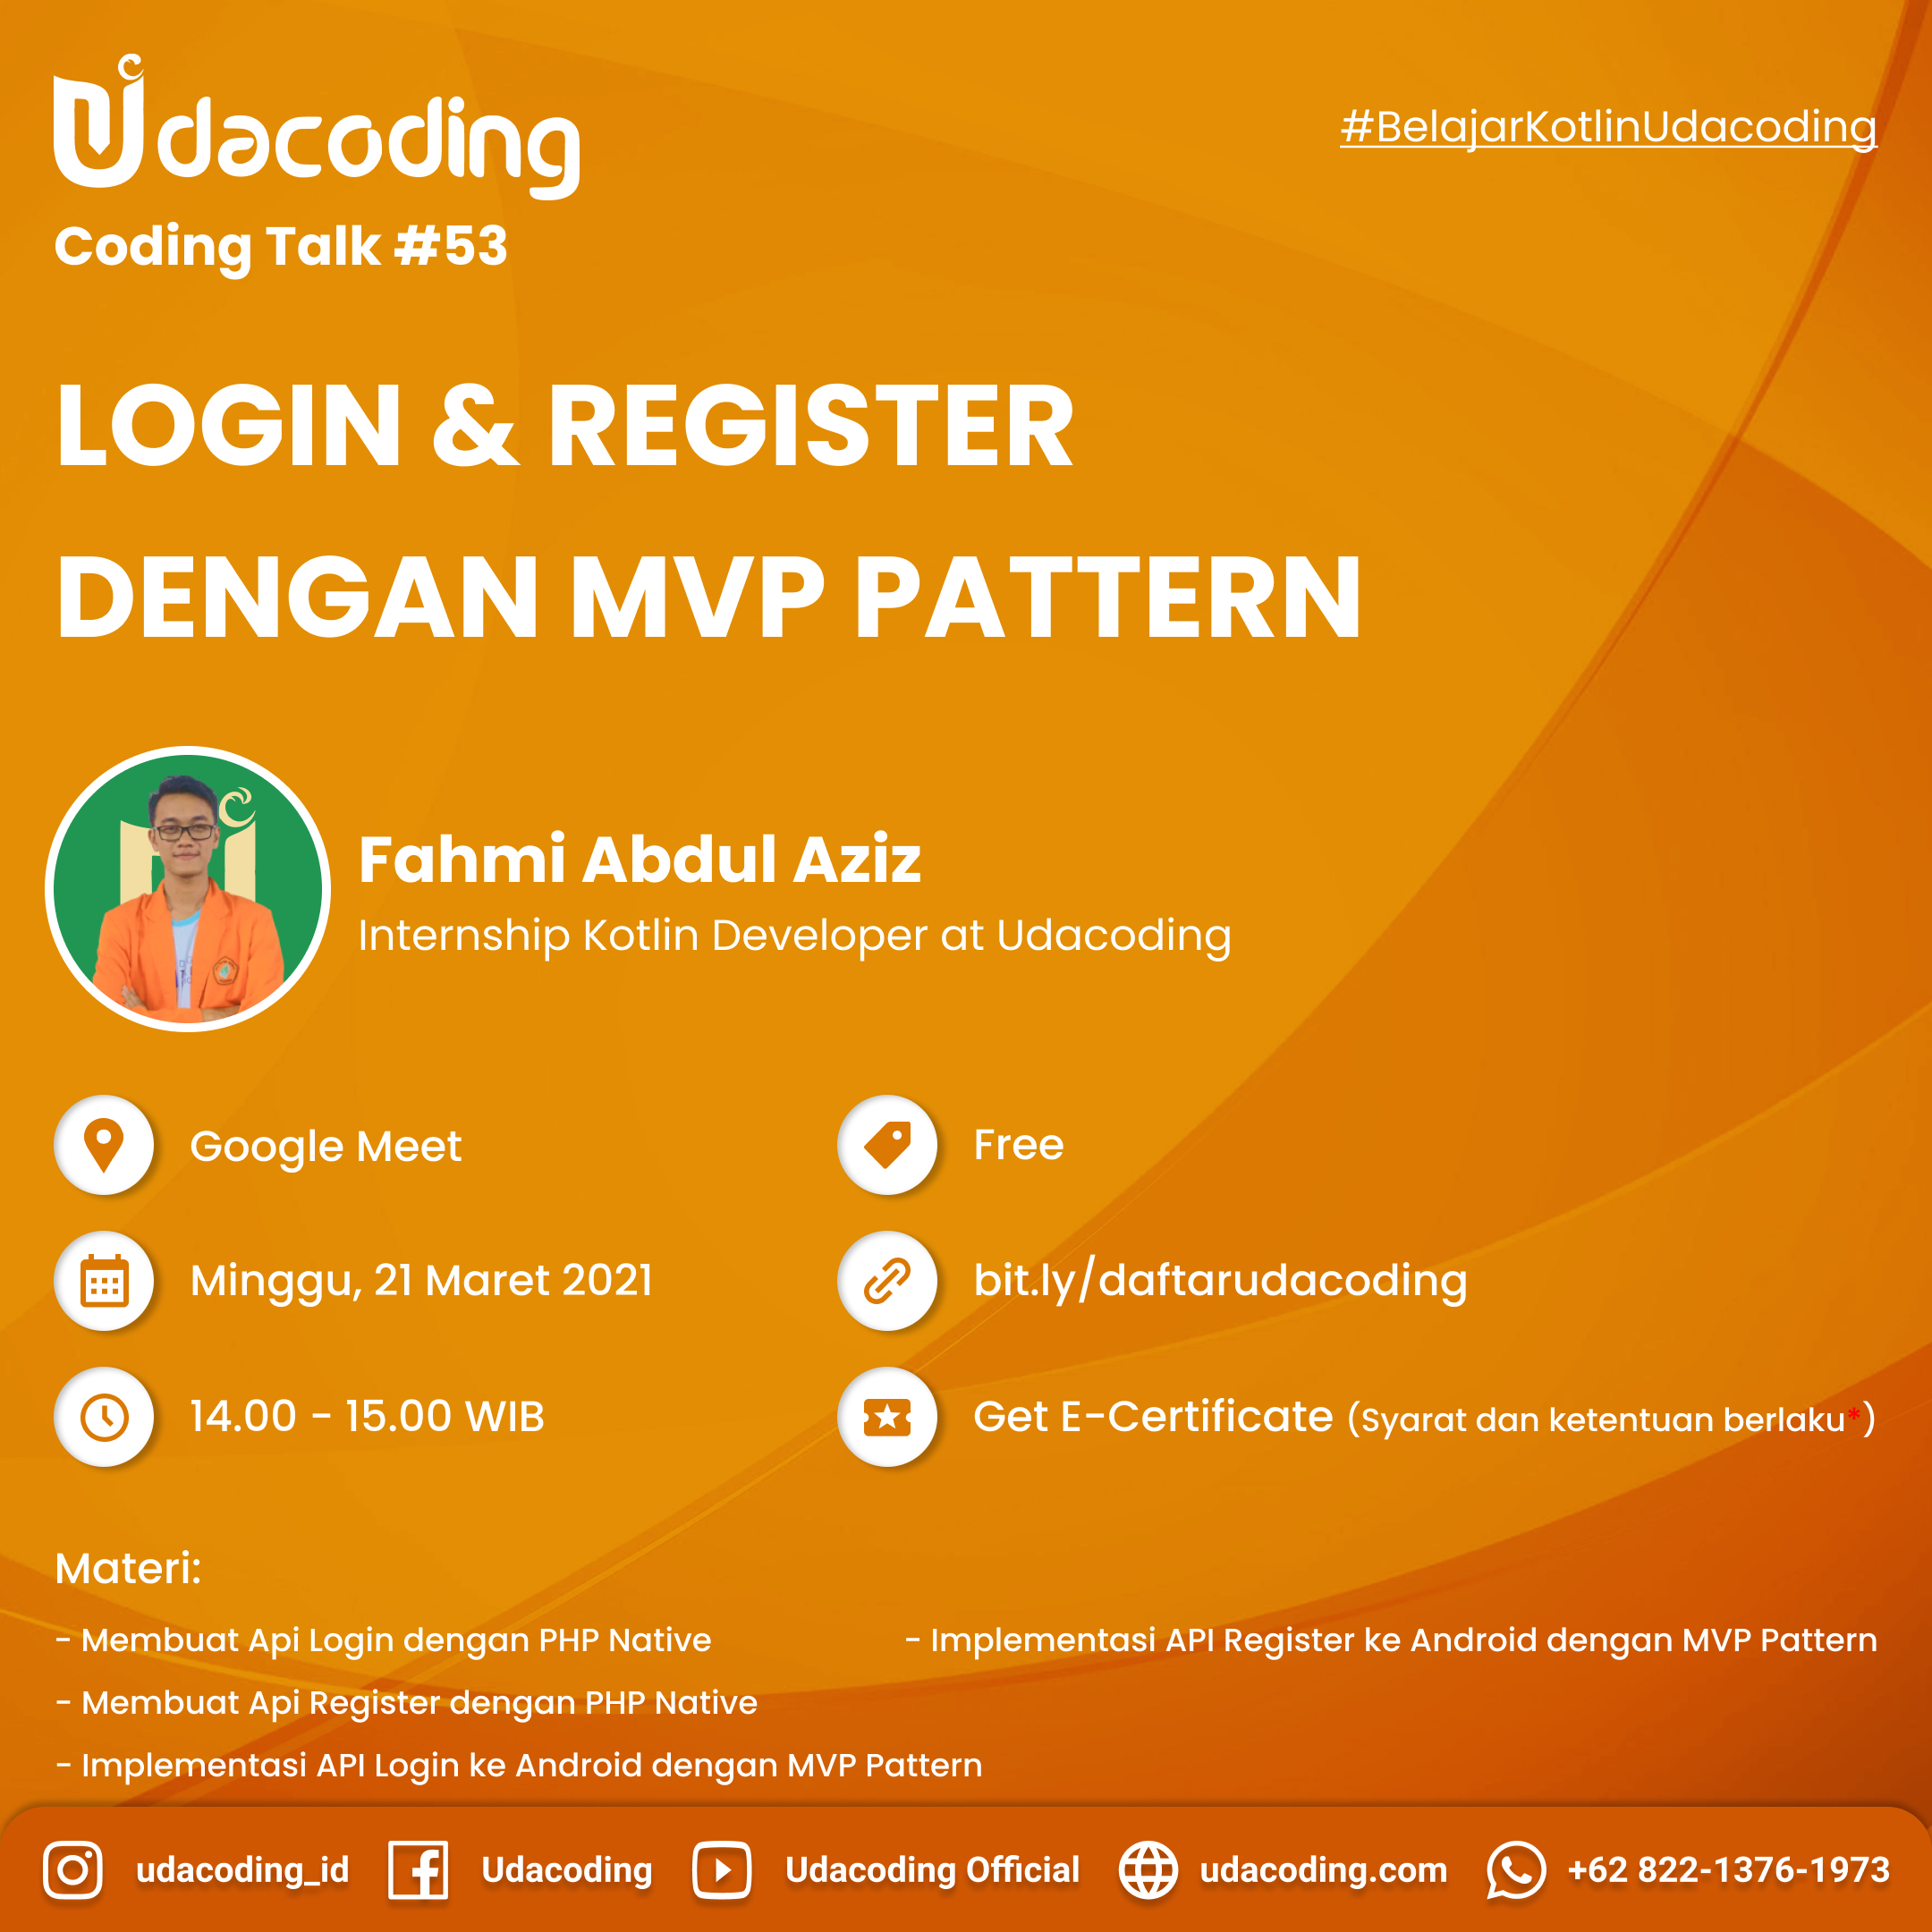 Login & Register dengan MPV Pattern